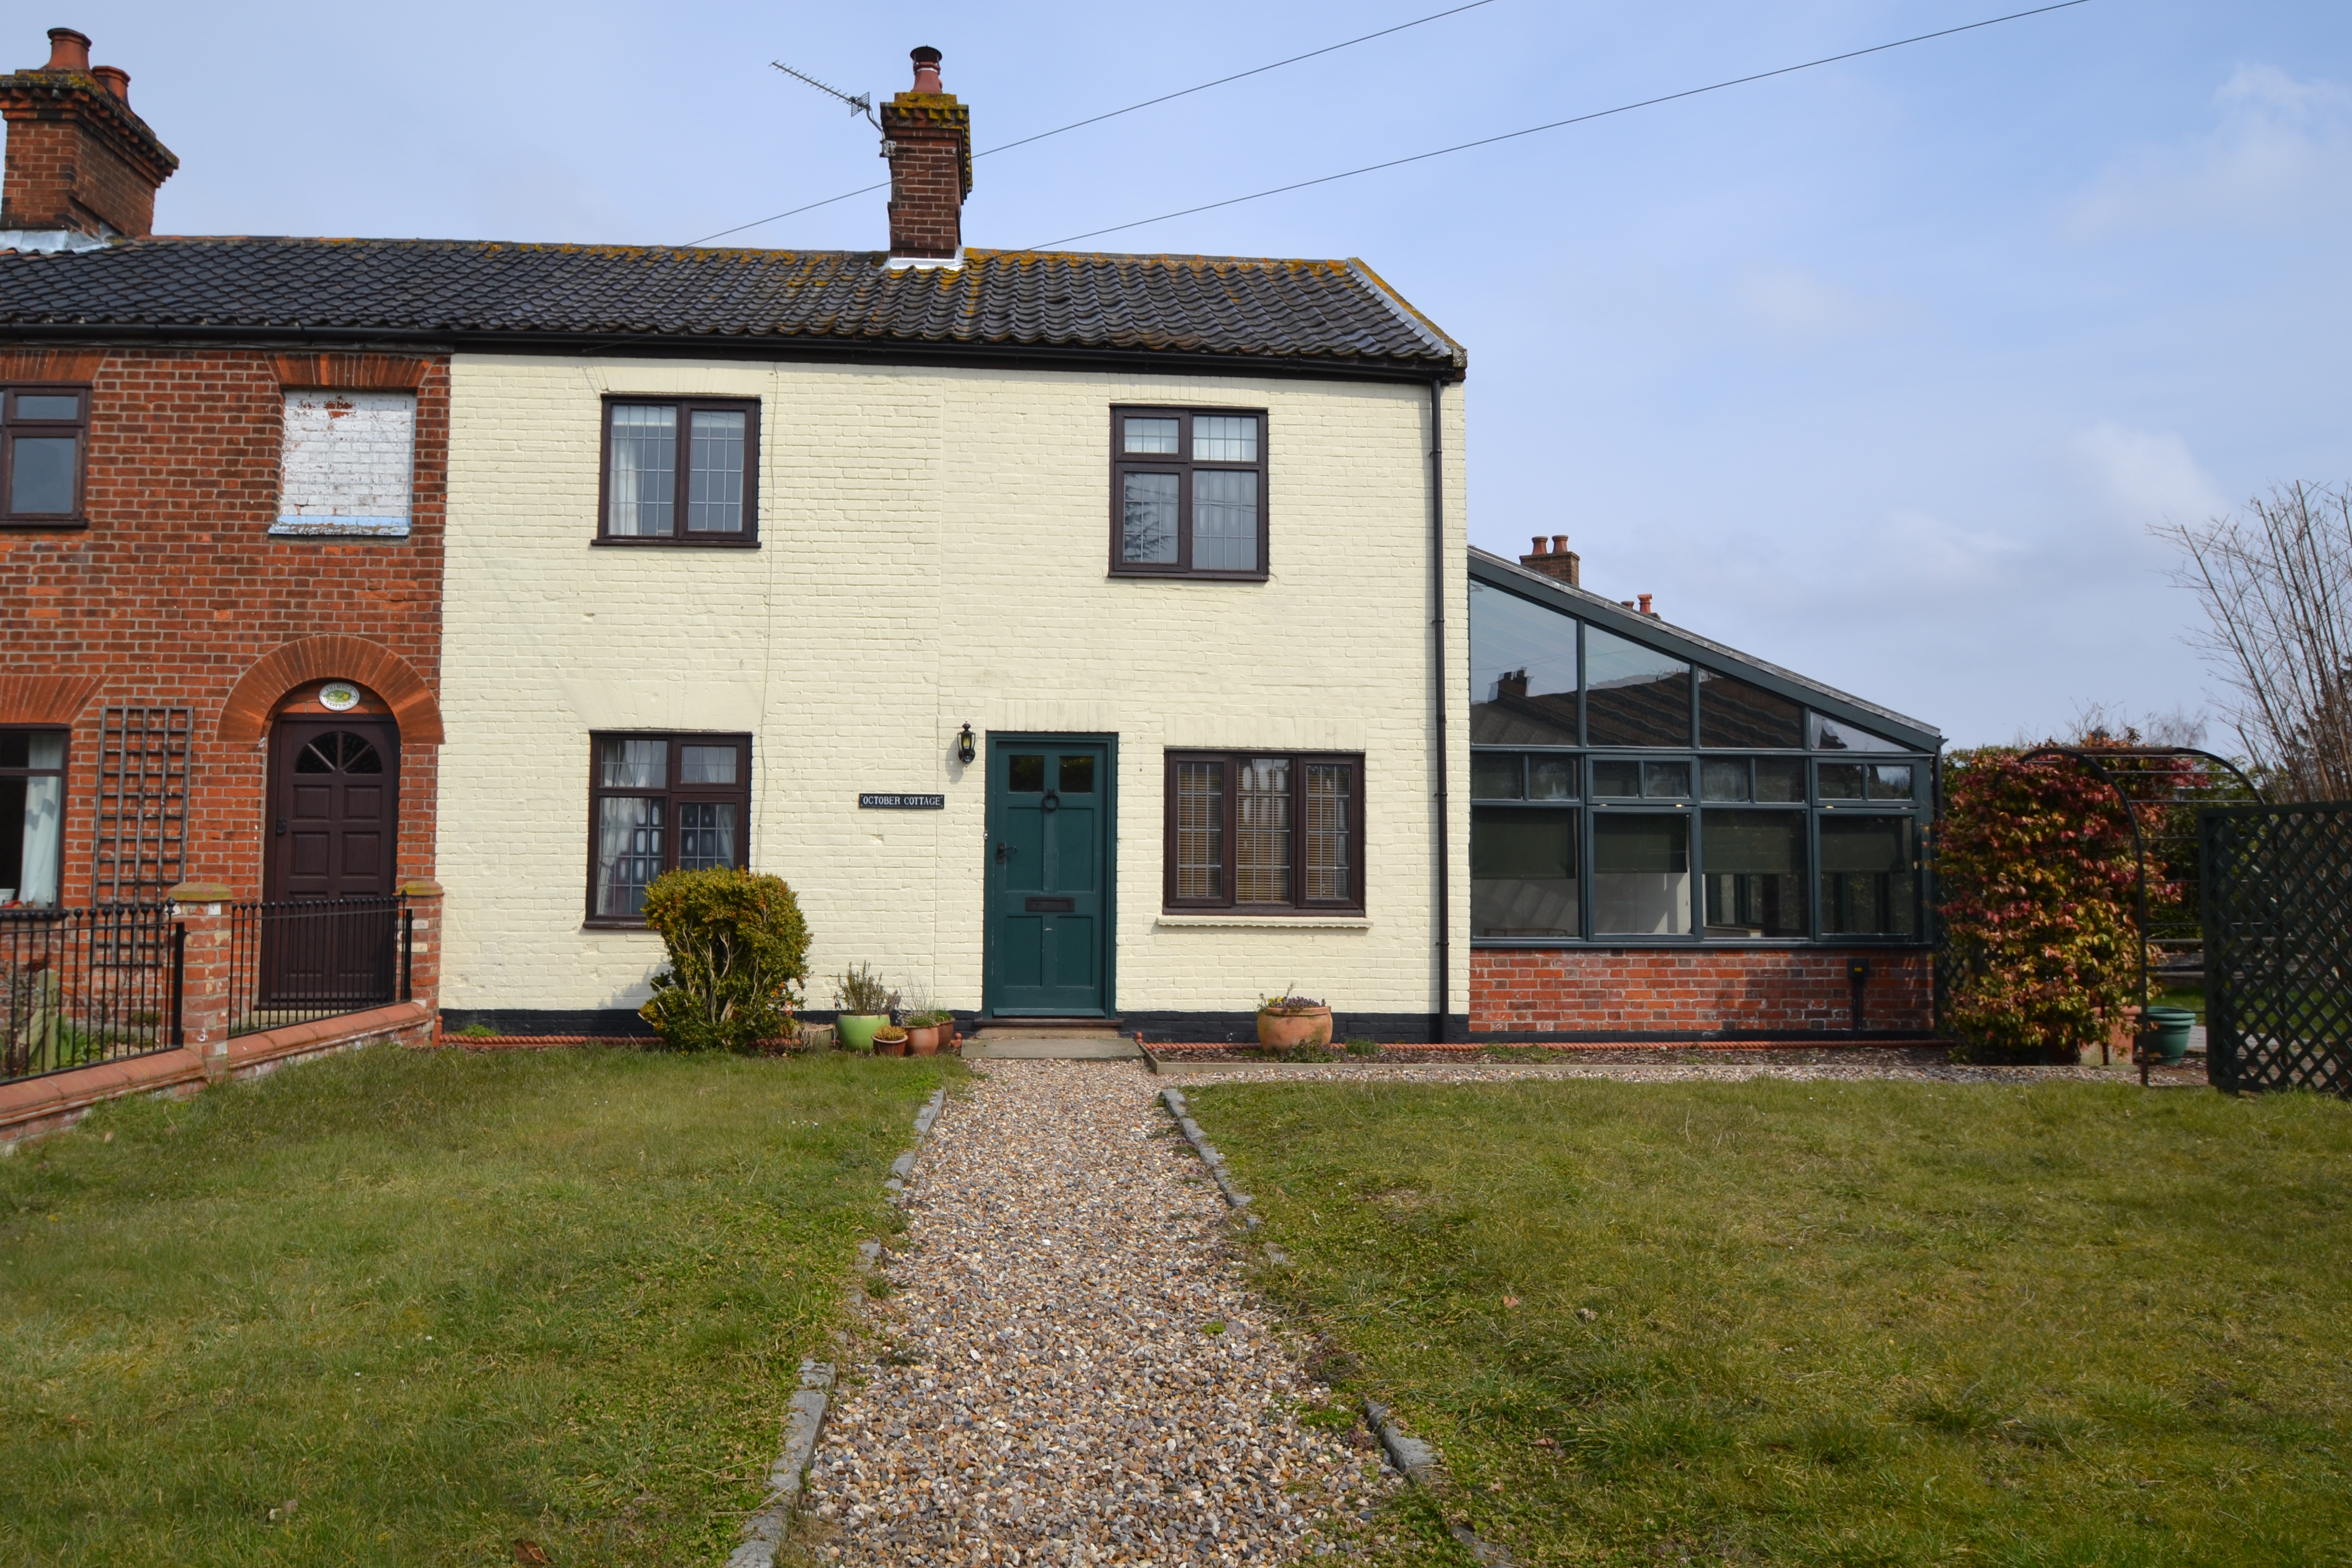 Residential property to let from Letting Agents, Kings & Co